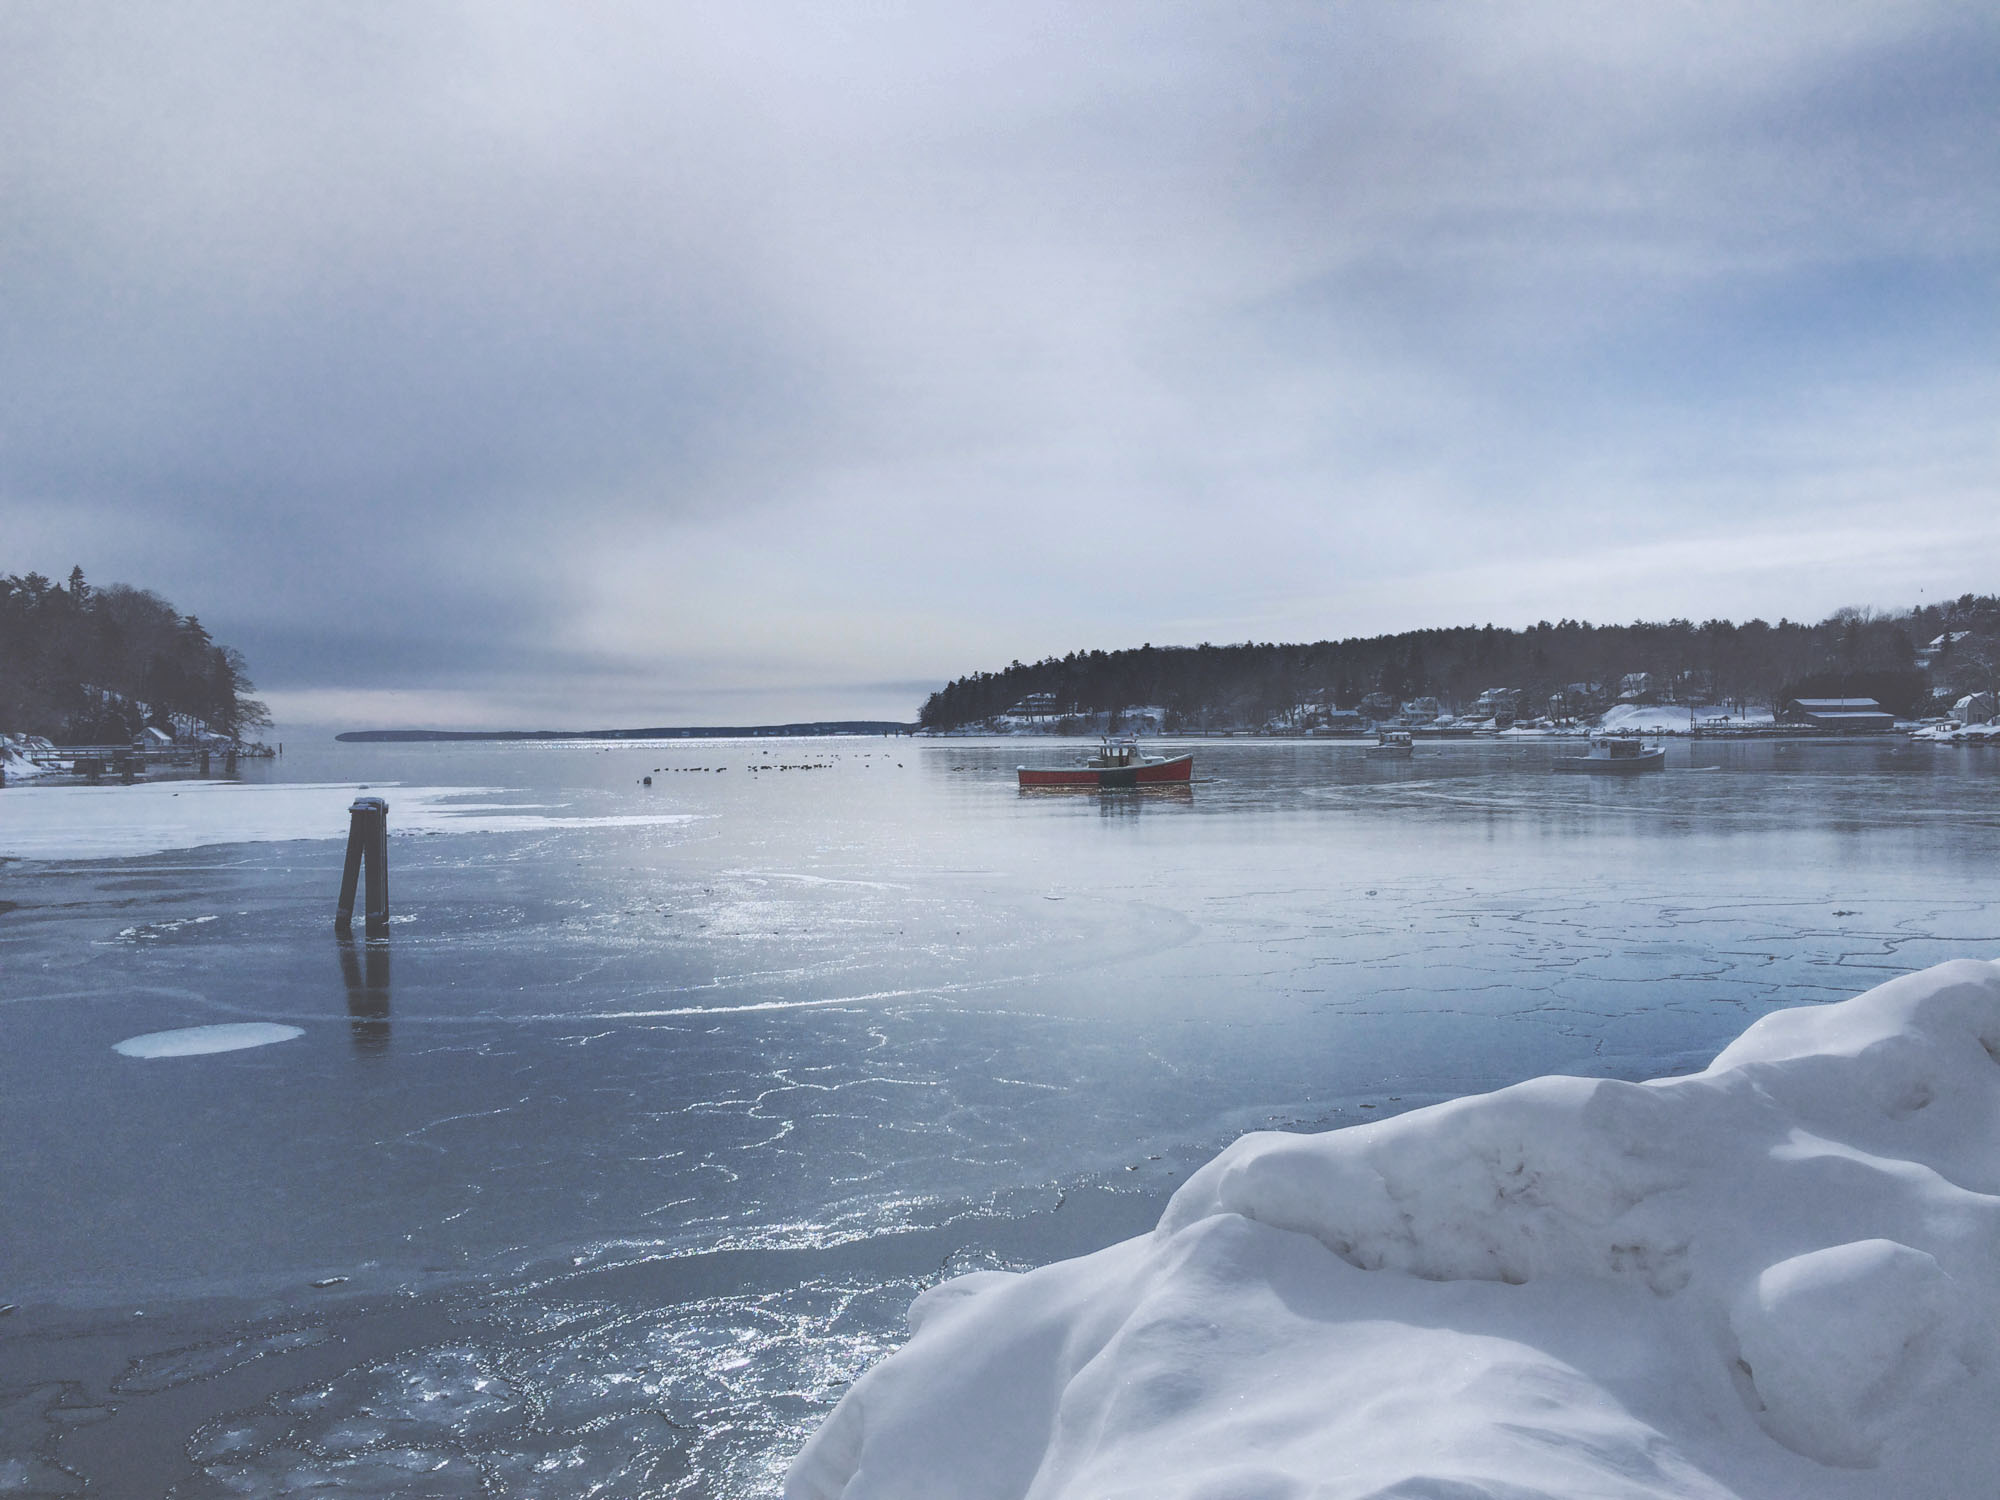 An icy view over the water in Rockport ME